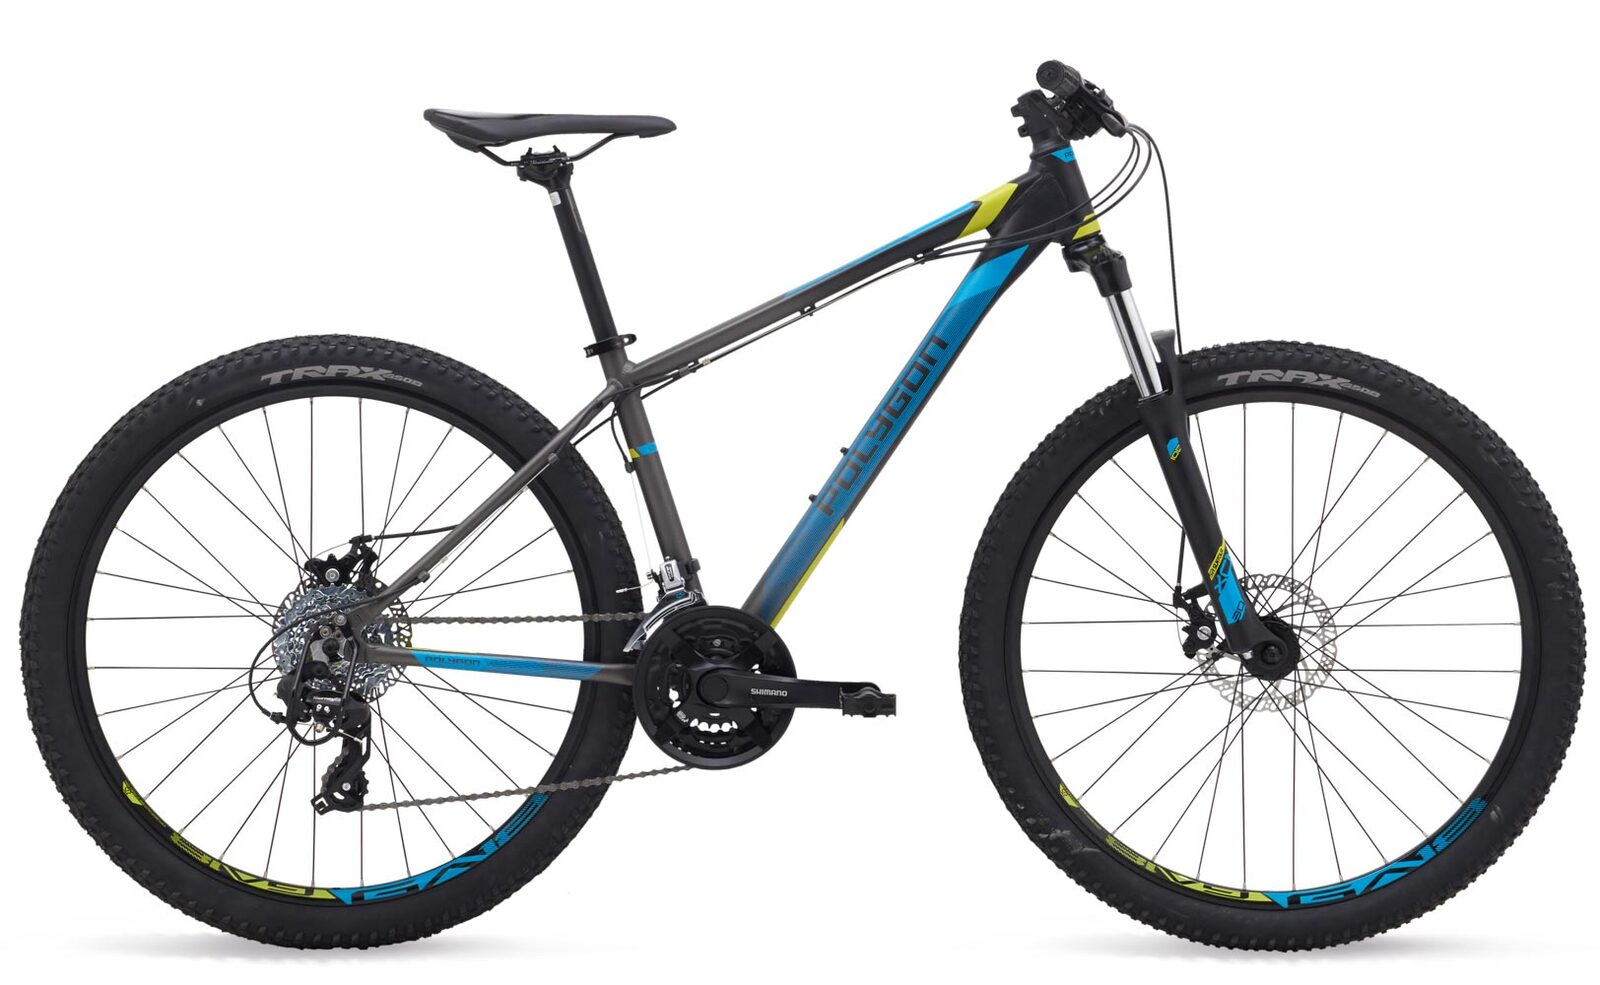 74831f922eb Polygon Cascade 3.0 - 27.5 inch Mountain Bike | Free 14 Day Test